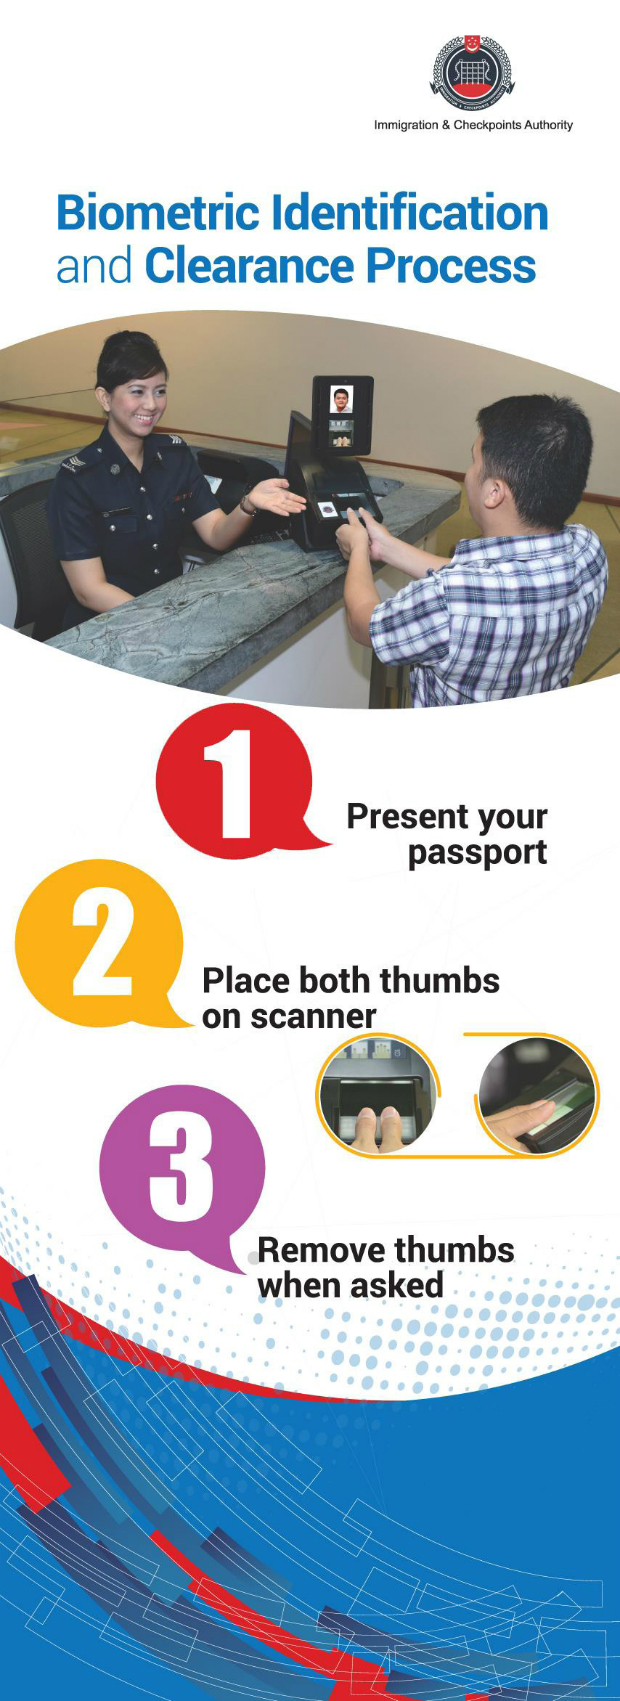 singapore-to-scan-all-travelers-thumbprints